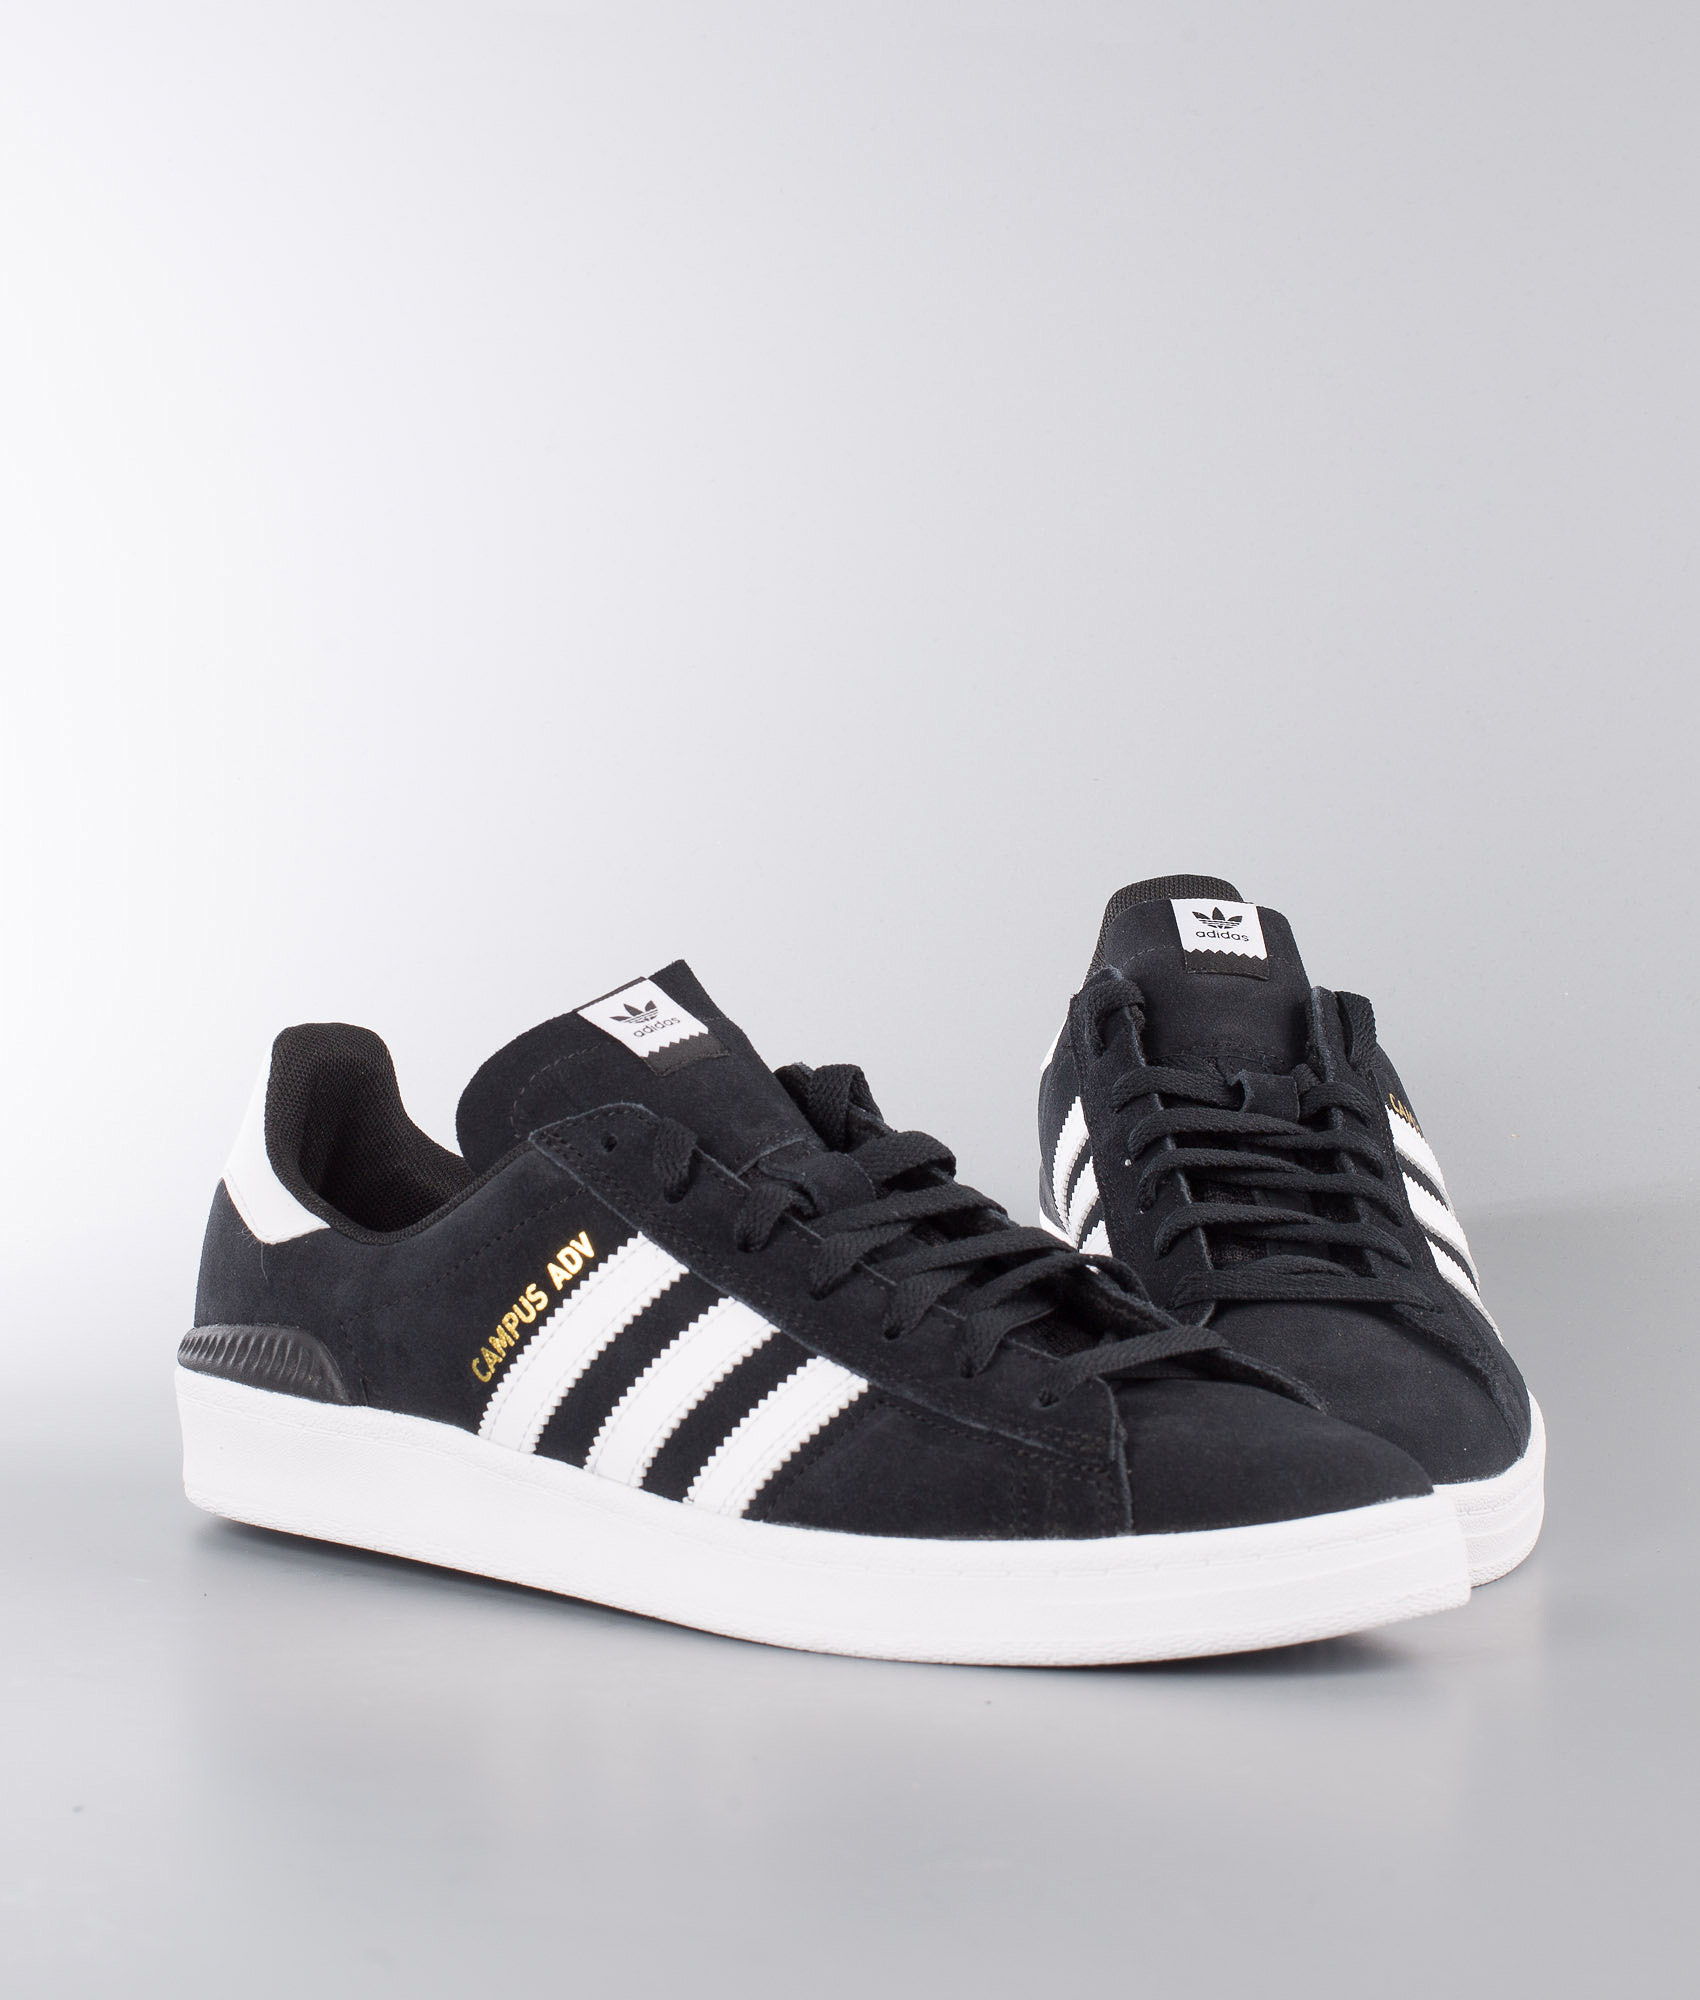 meilleur site web 35605 a5b49 Adidas Skateboarding Campus Adv Shoes Core Black/Ftwr White/Ftwr White